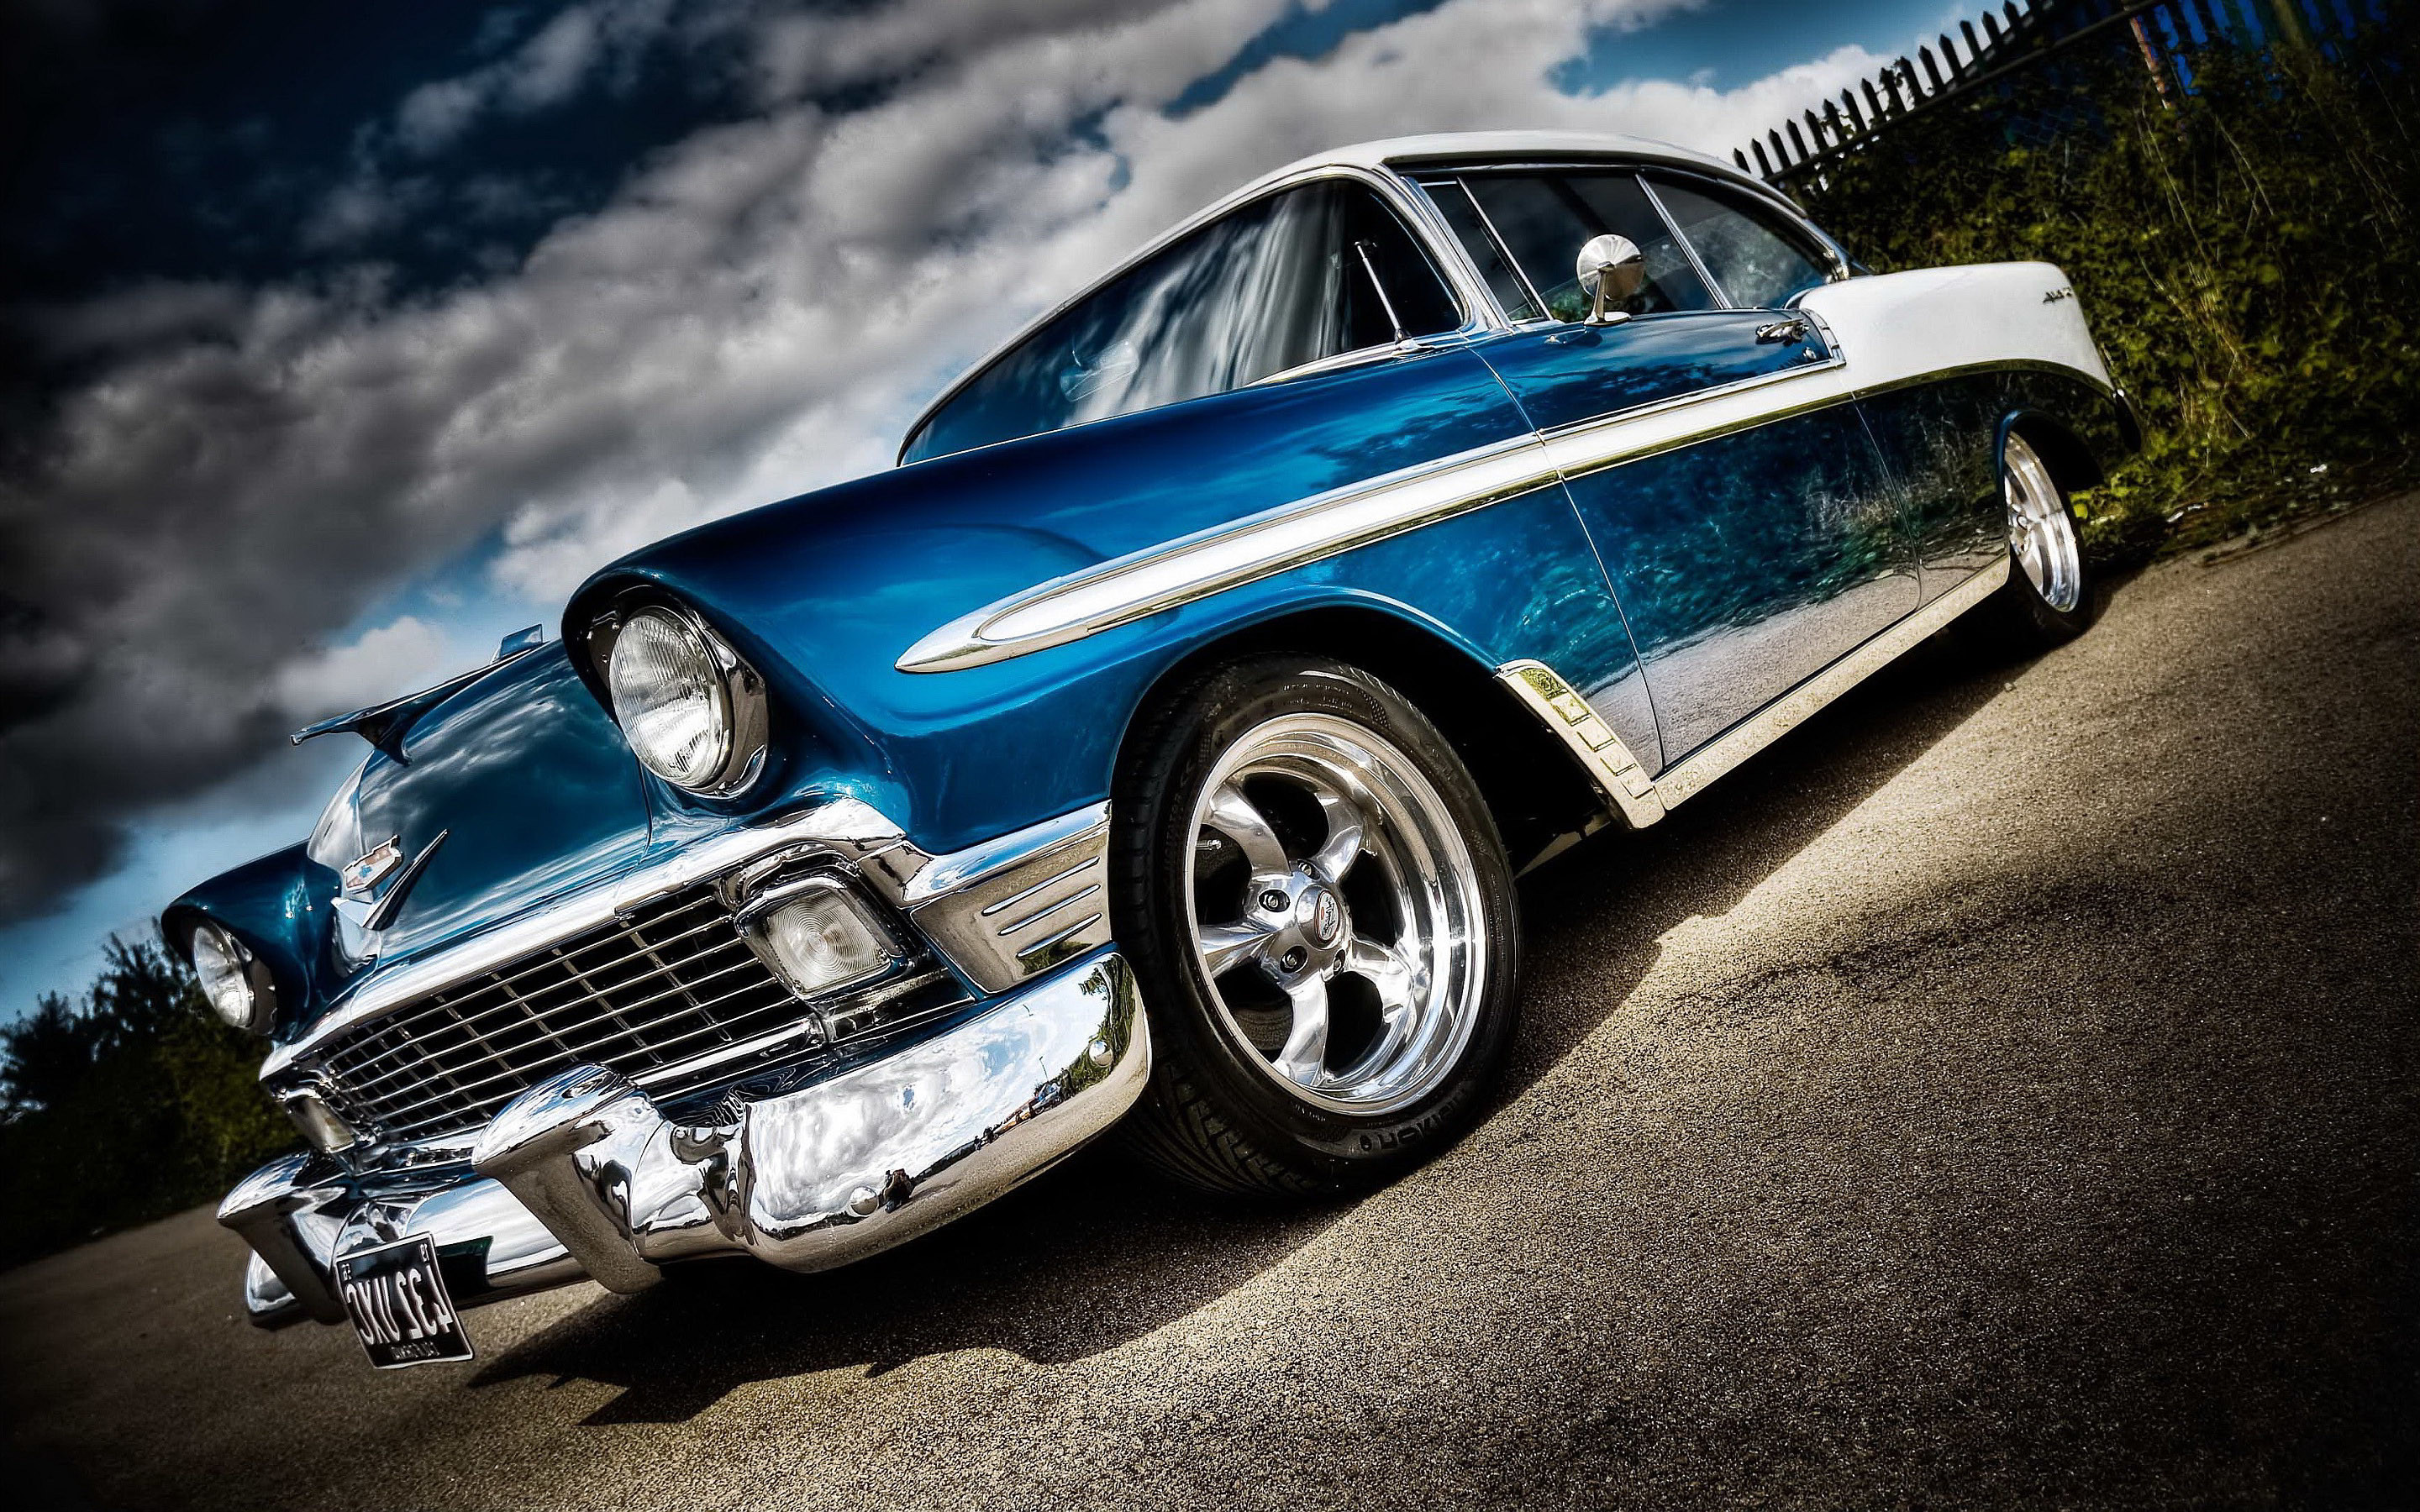 Classic Muscle Car Mobile Wallpaper Old Muscle Cars Hd Wallpapers 183 ①